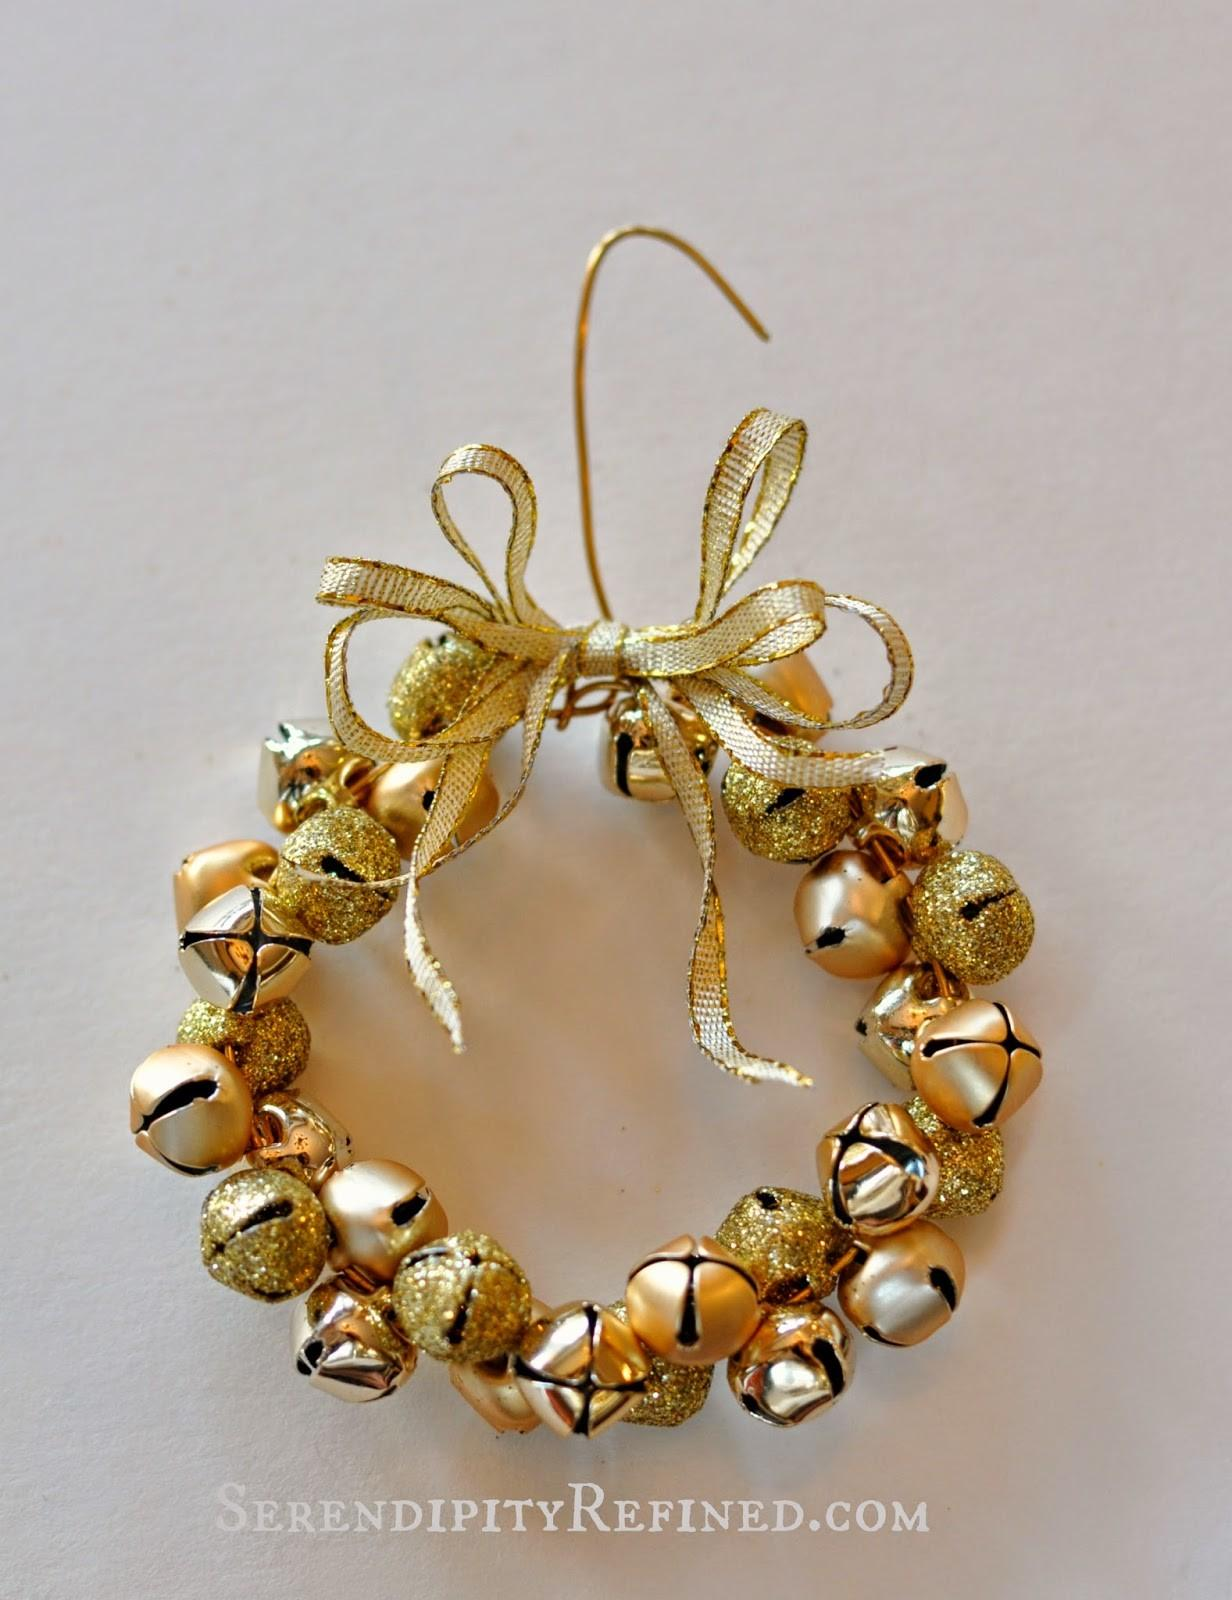 Serendipity Refined Blog Easy Gold Jingle Bell Wreath